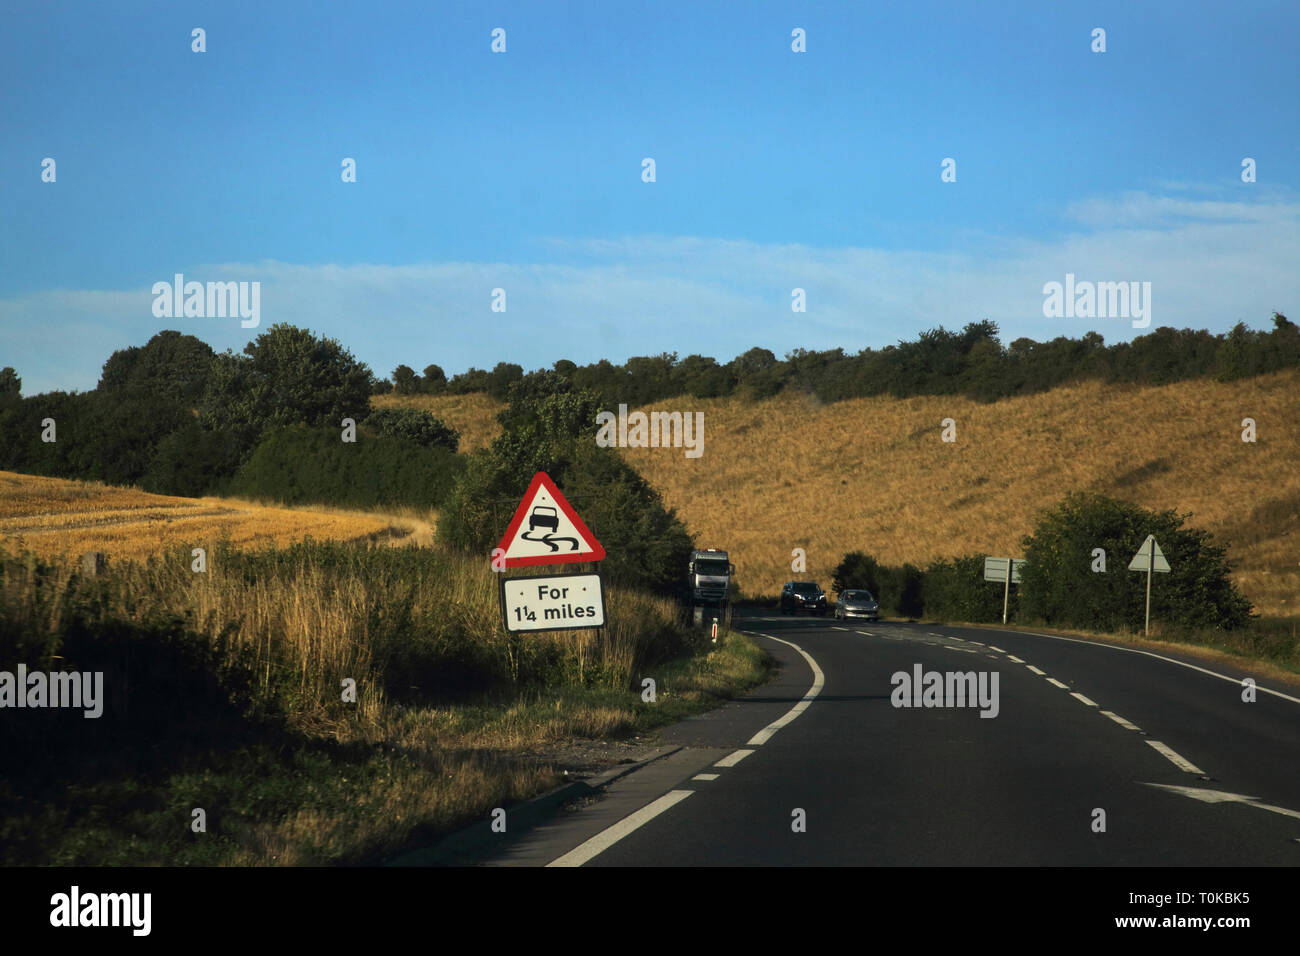 Cars on A303 on the way to Dorset slippery road ahead signEngland - Stock Image